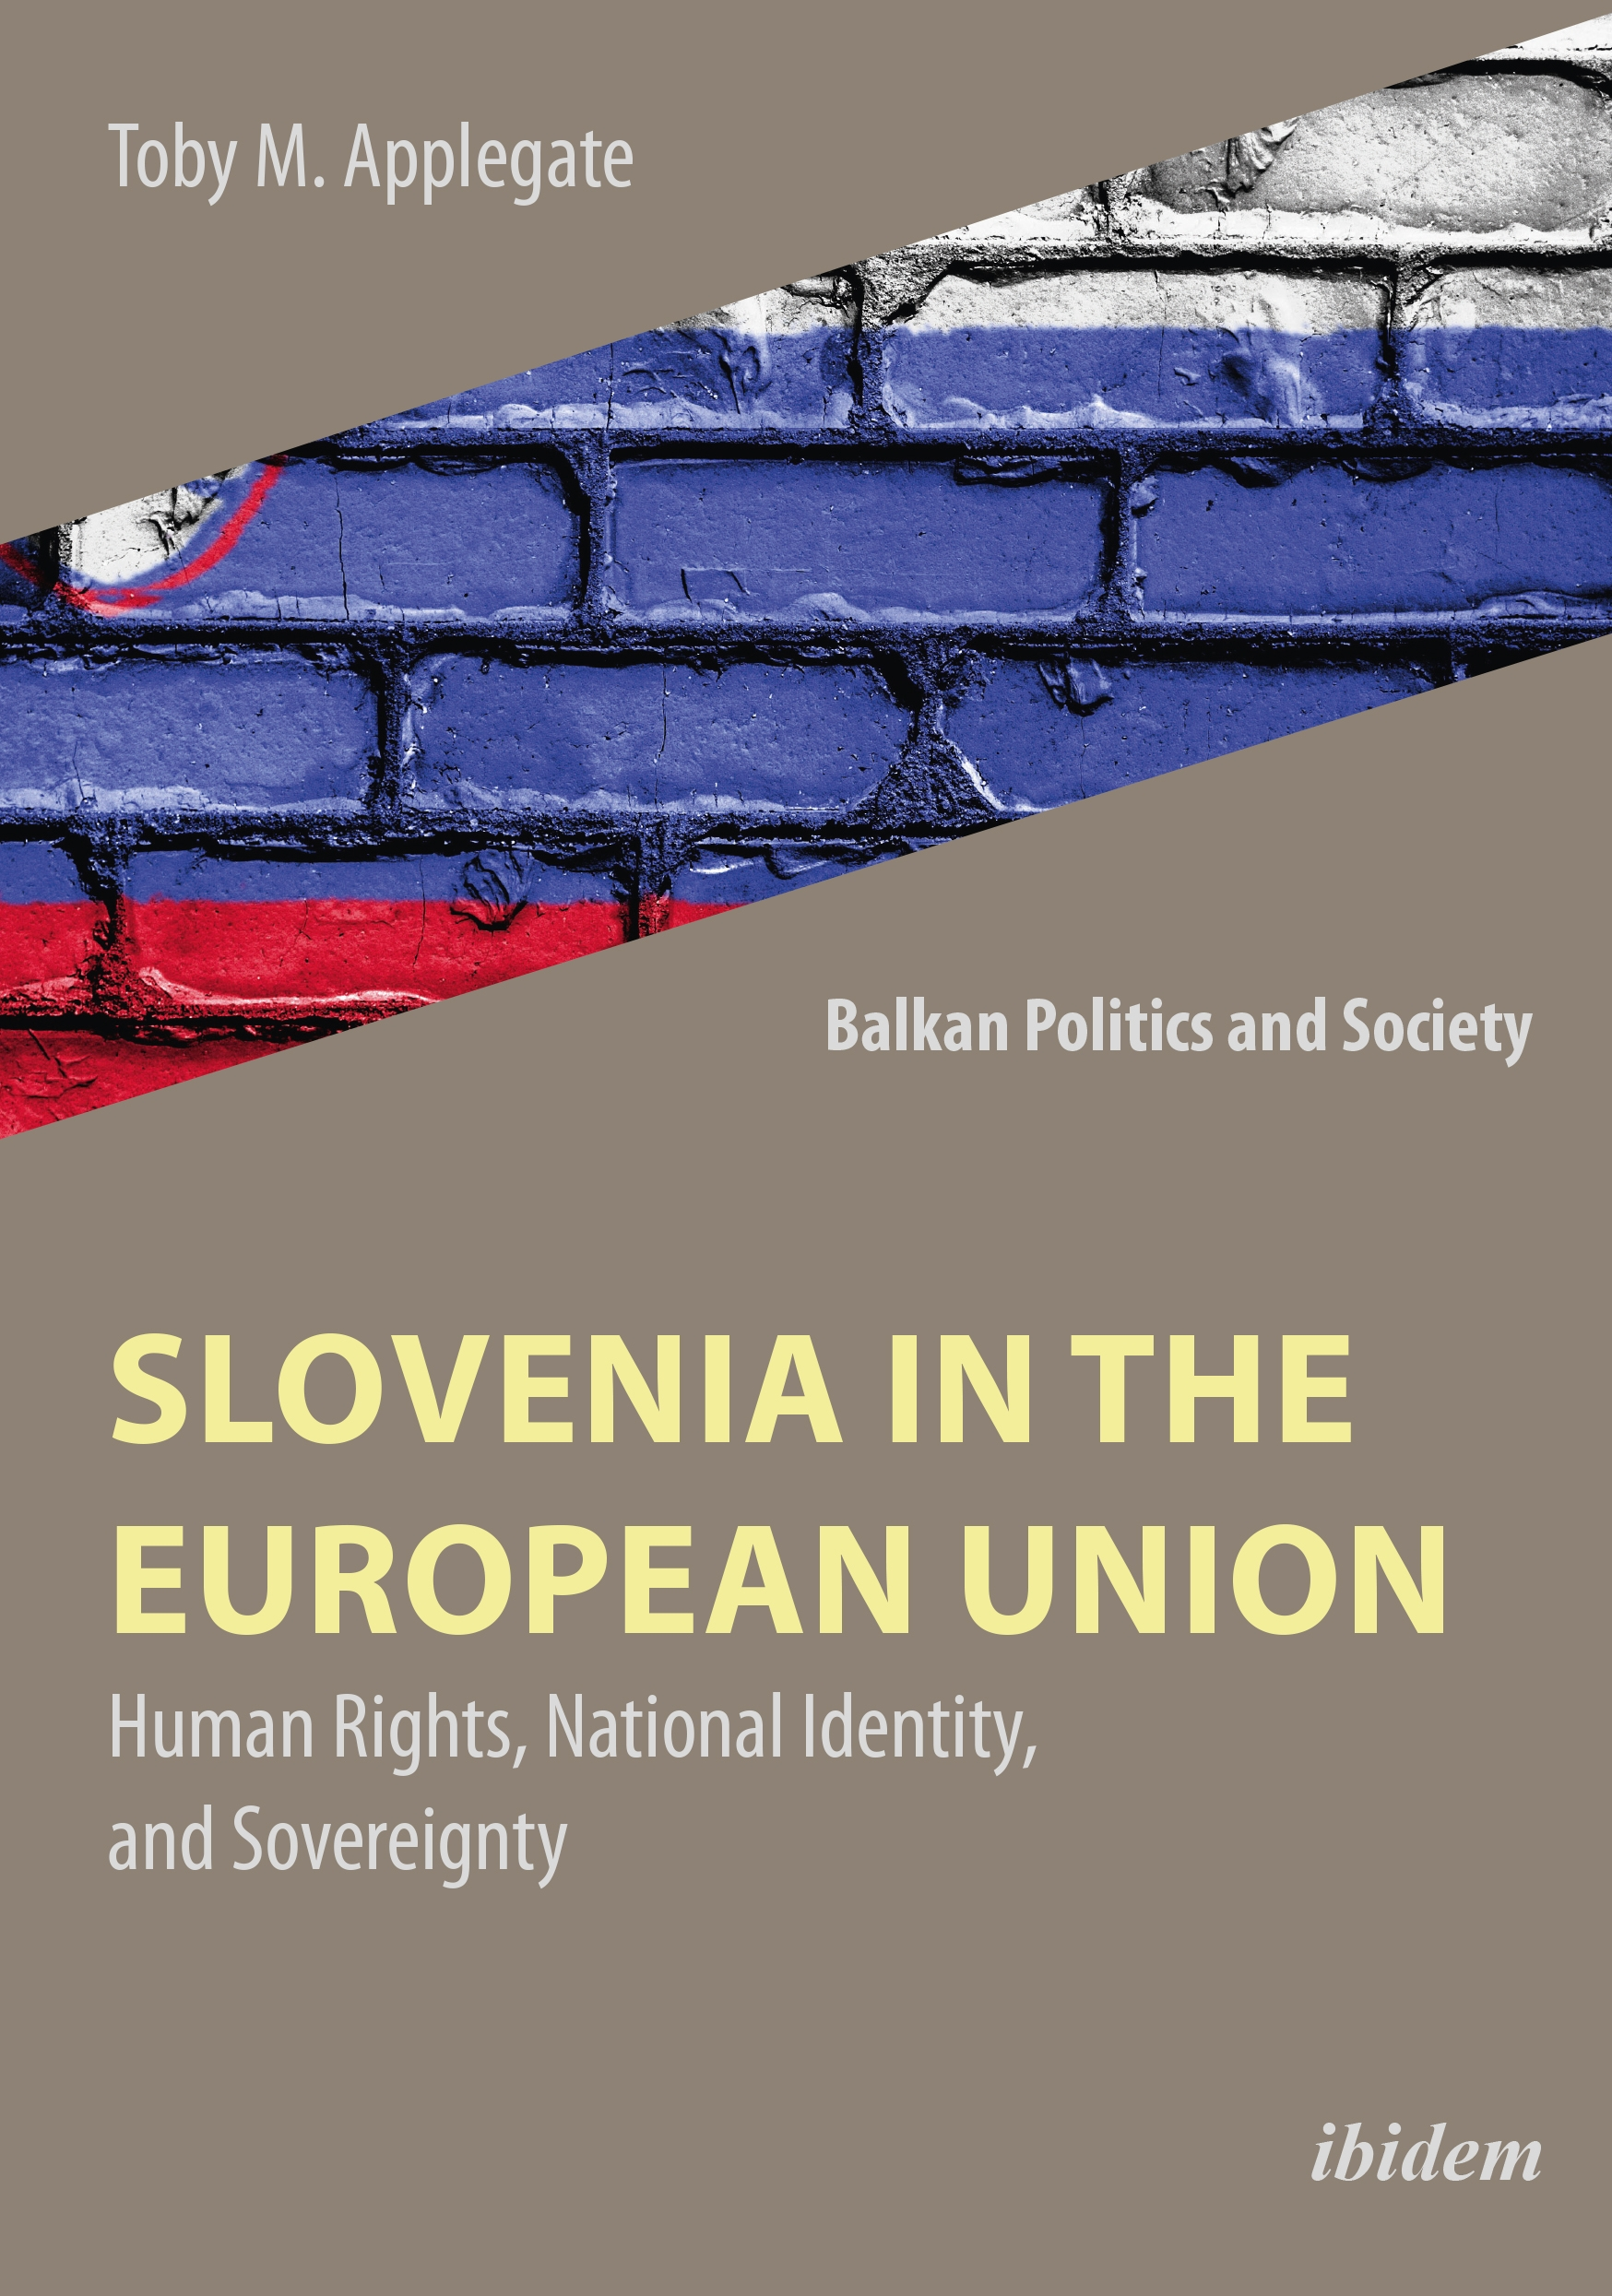 Balkan Politics and Society